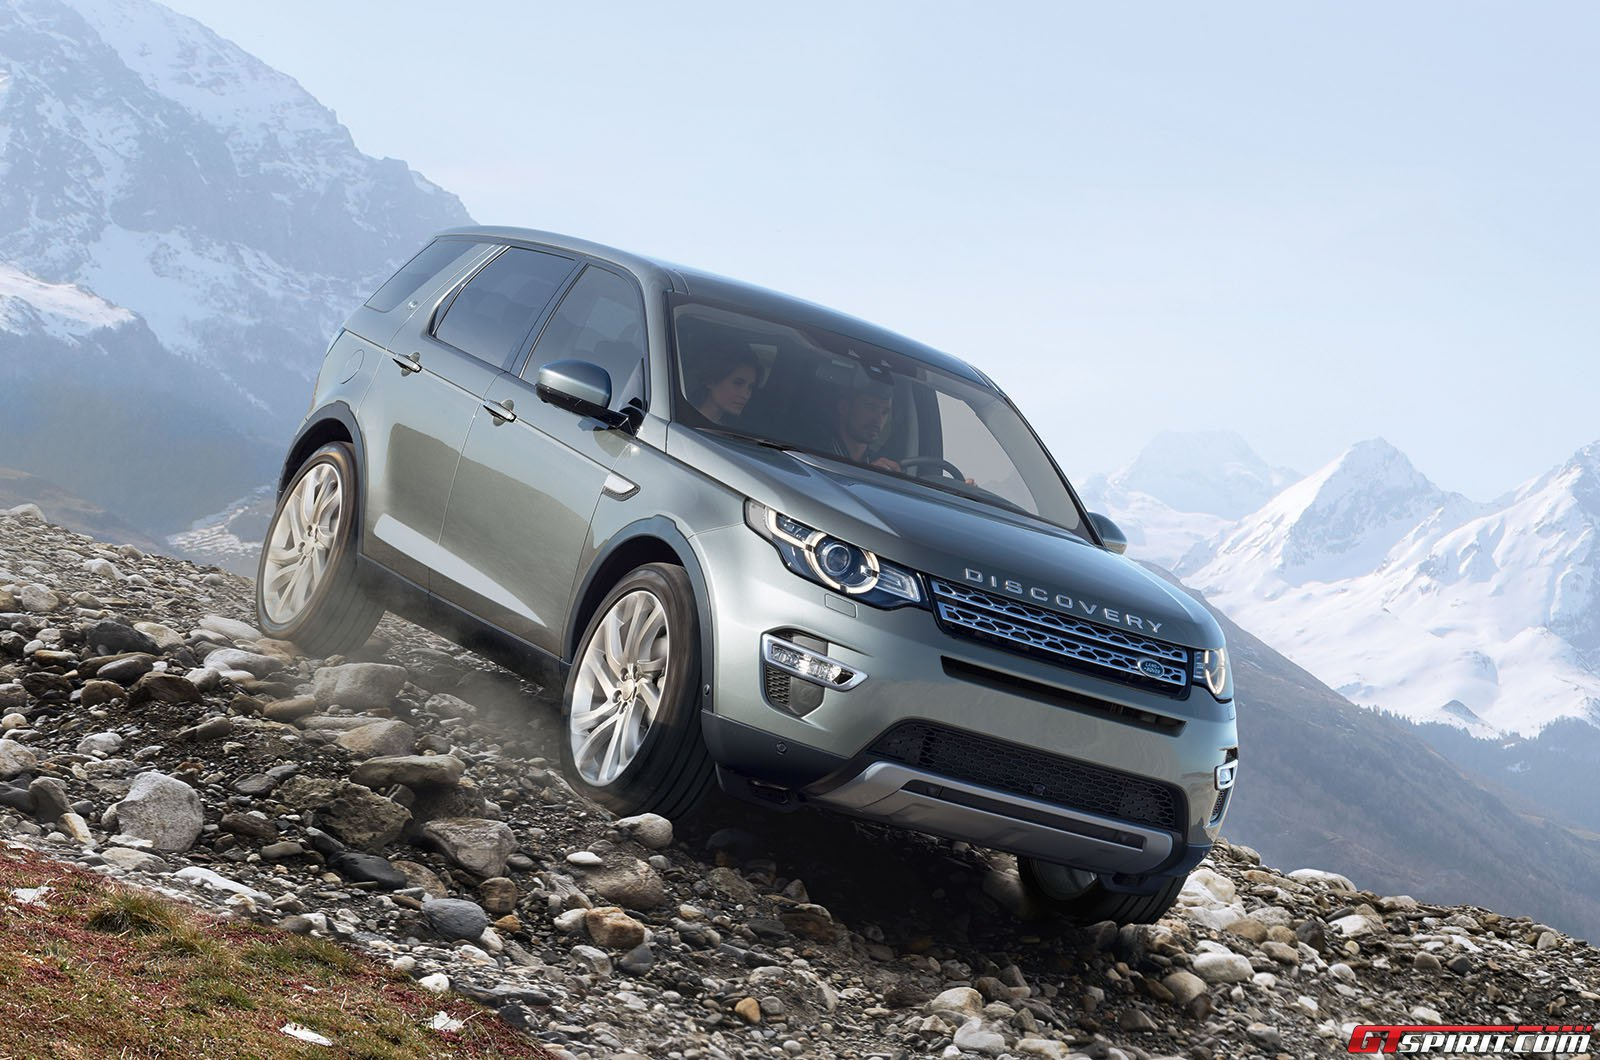 2014 land rover discovery sport pricing announced gtspirit. Black Bedroom Furniture Sets. Home Design Ideas